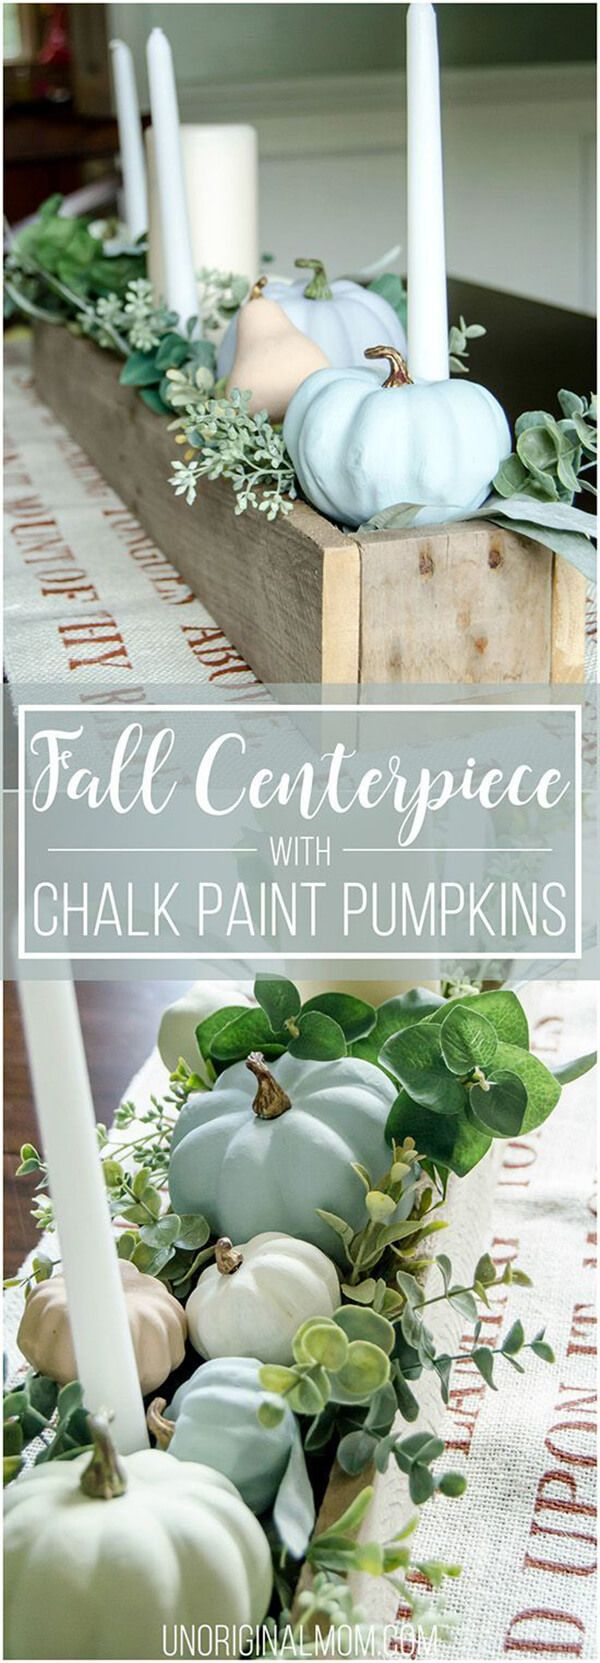 Rustic Centerpiece with Chalk Paint Pumpkins